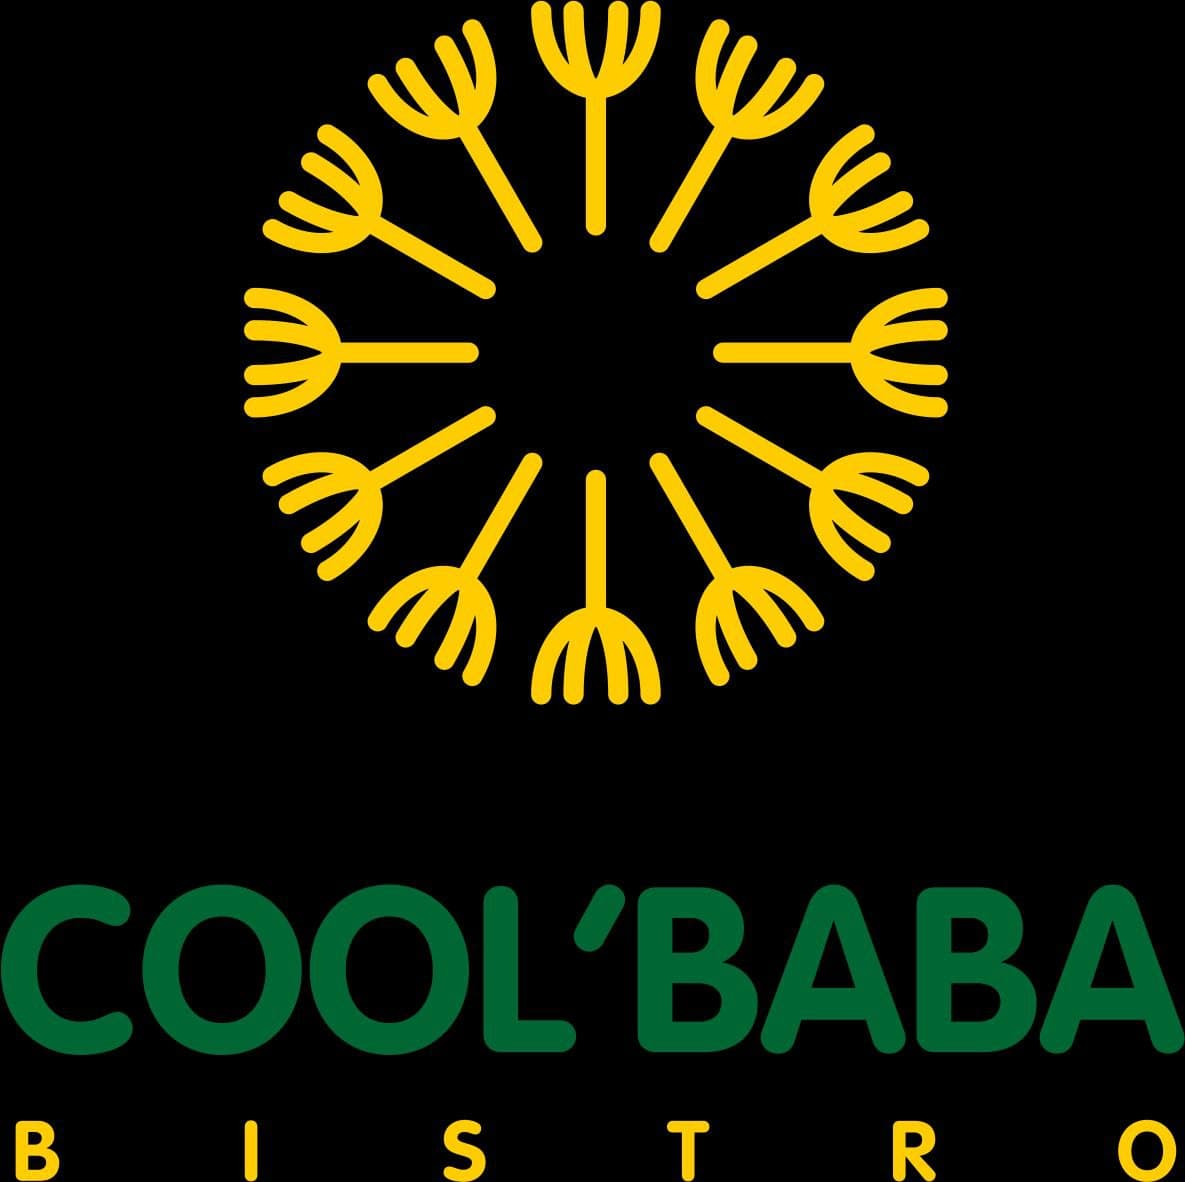 COOL'BABA bistro